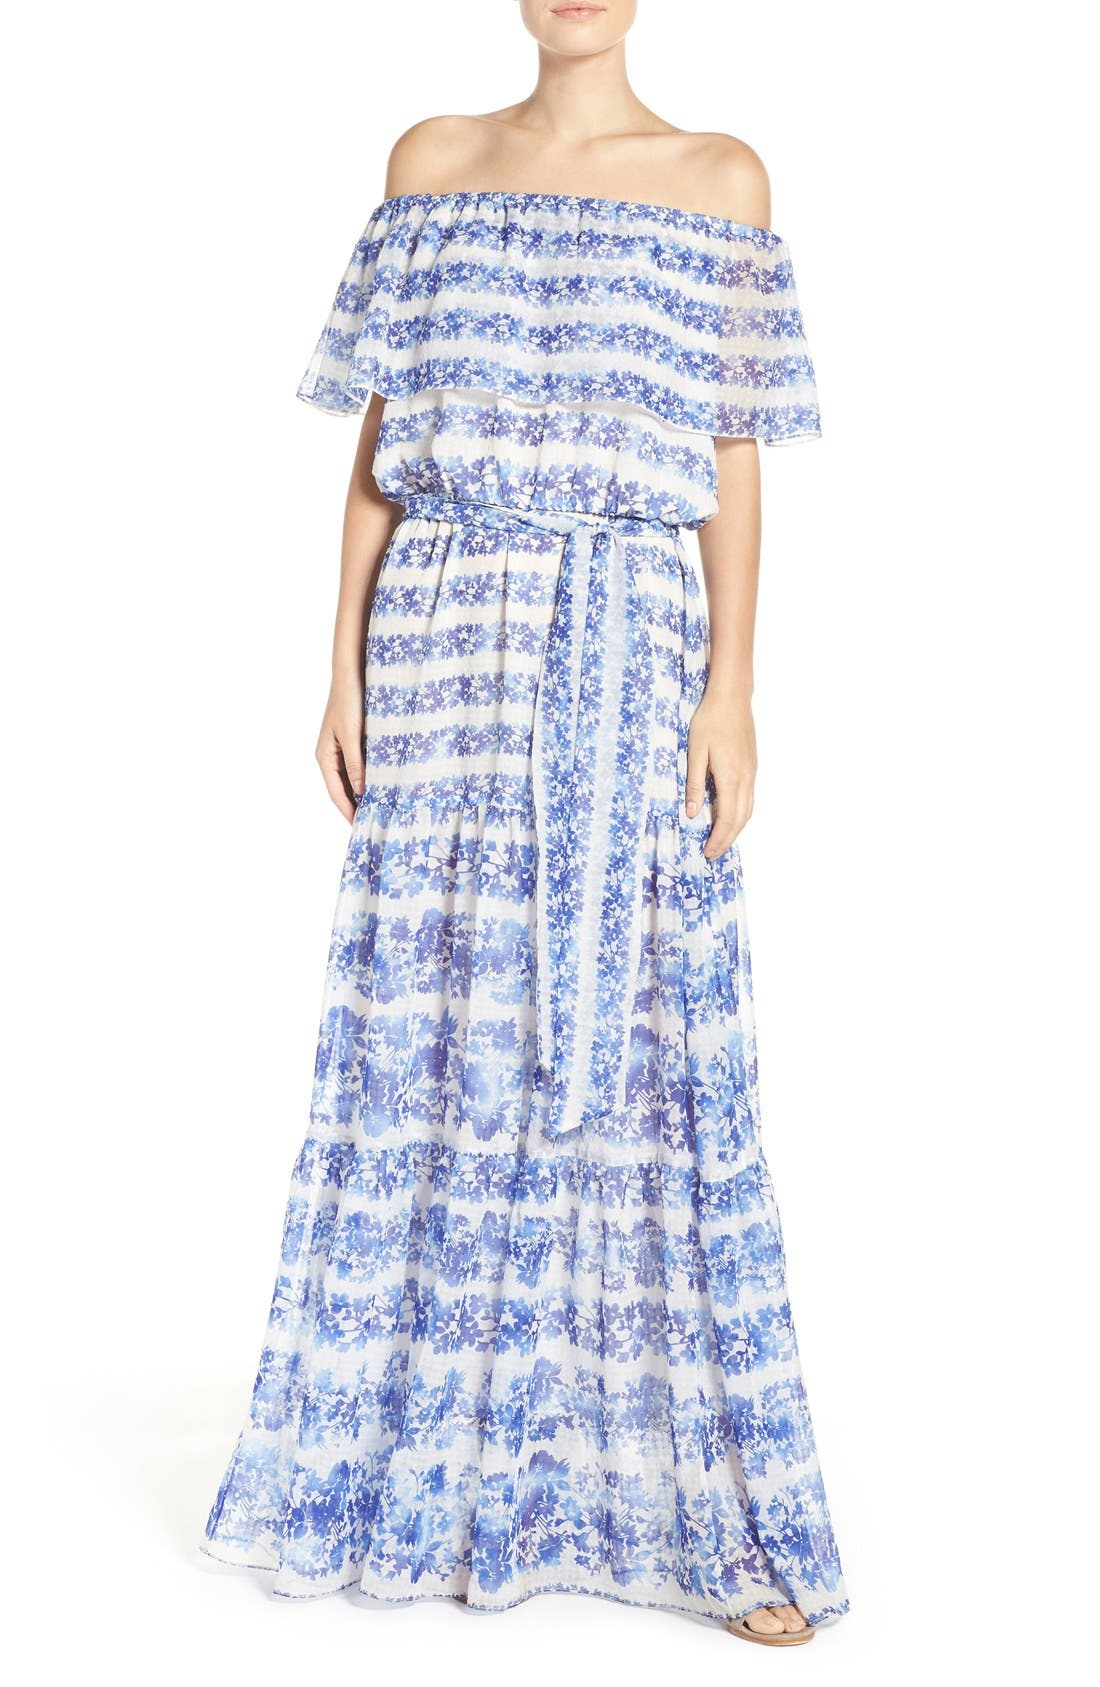 Main Image - Eliza J Blouson Maxi Dress